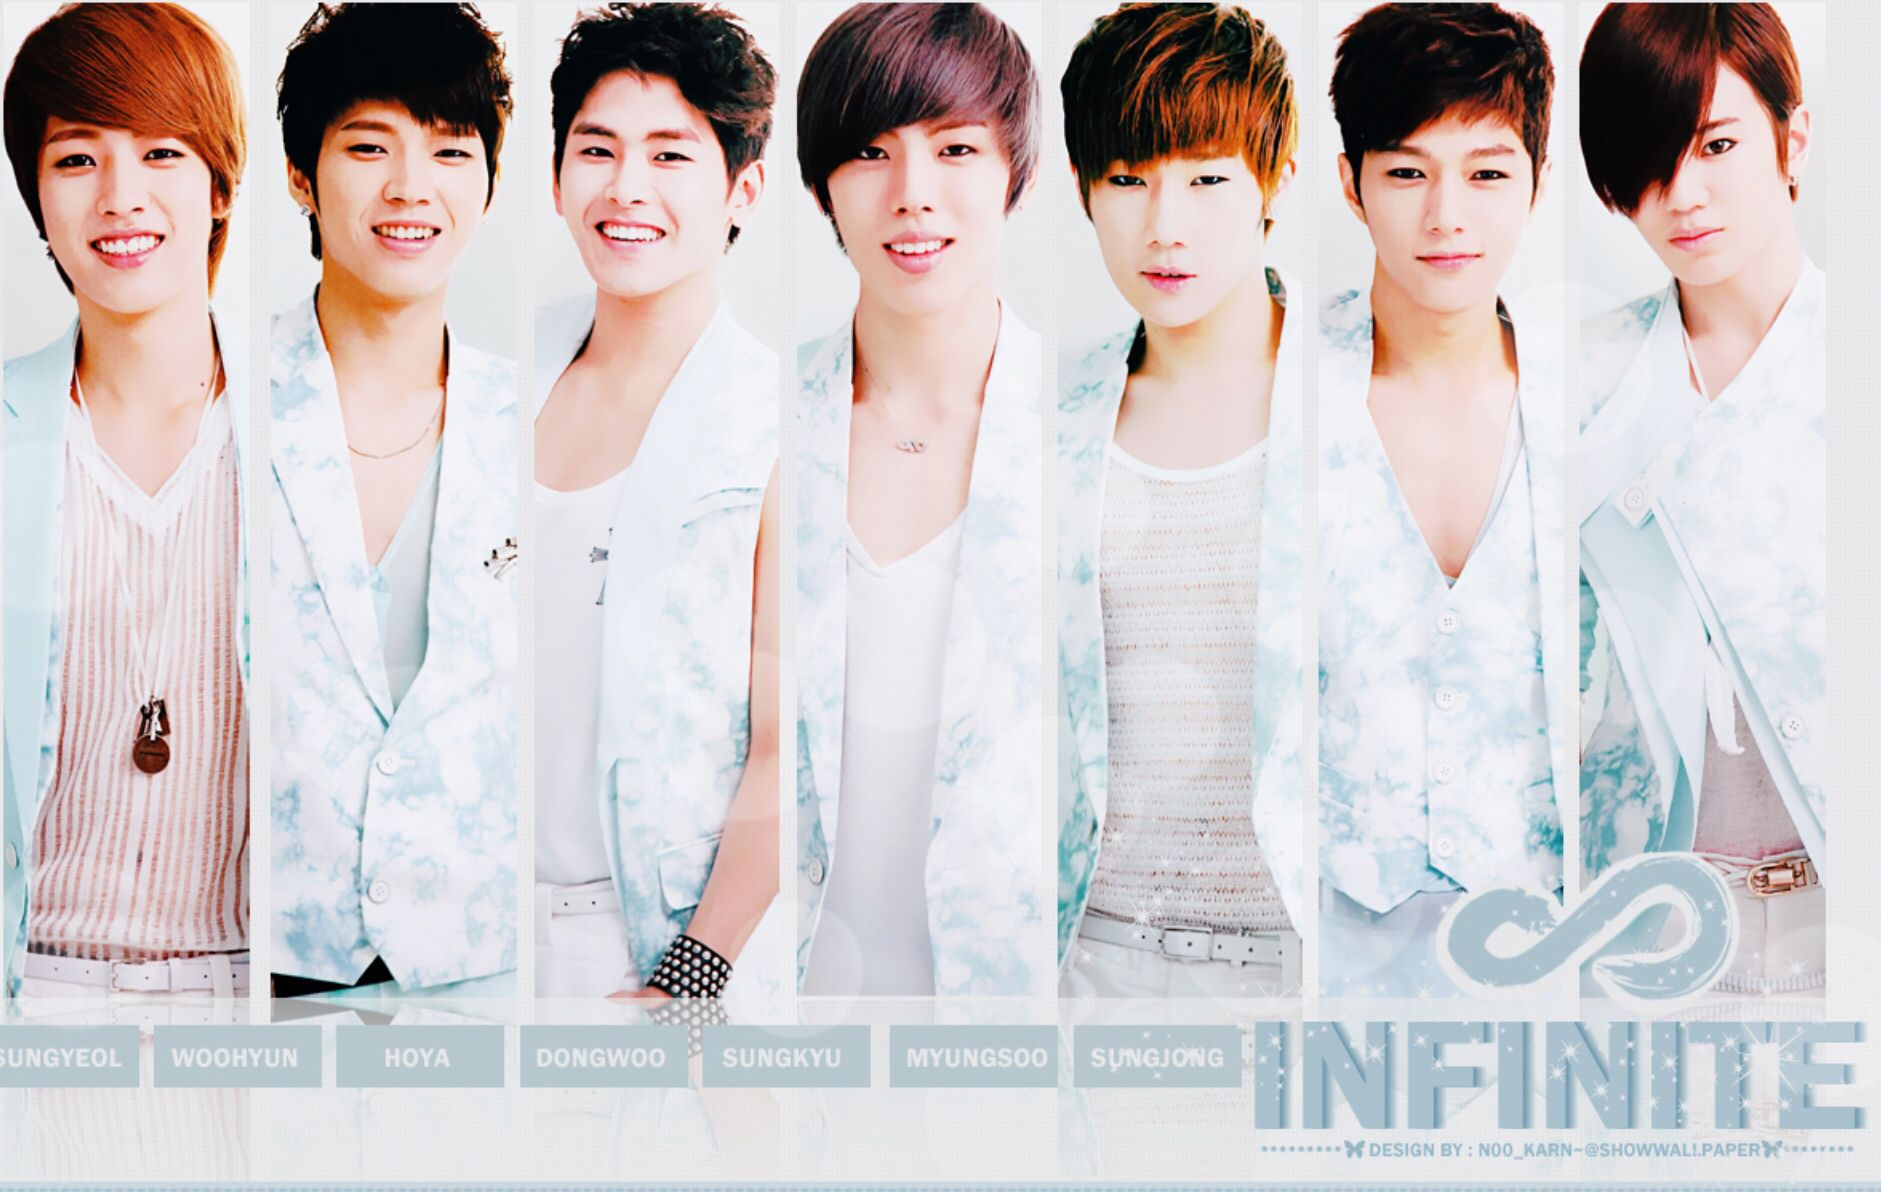 the can band boys shinee vs preliminary of members download bands infinite battle single kpop explorer smile u group